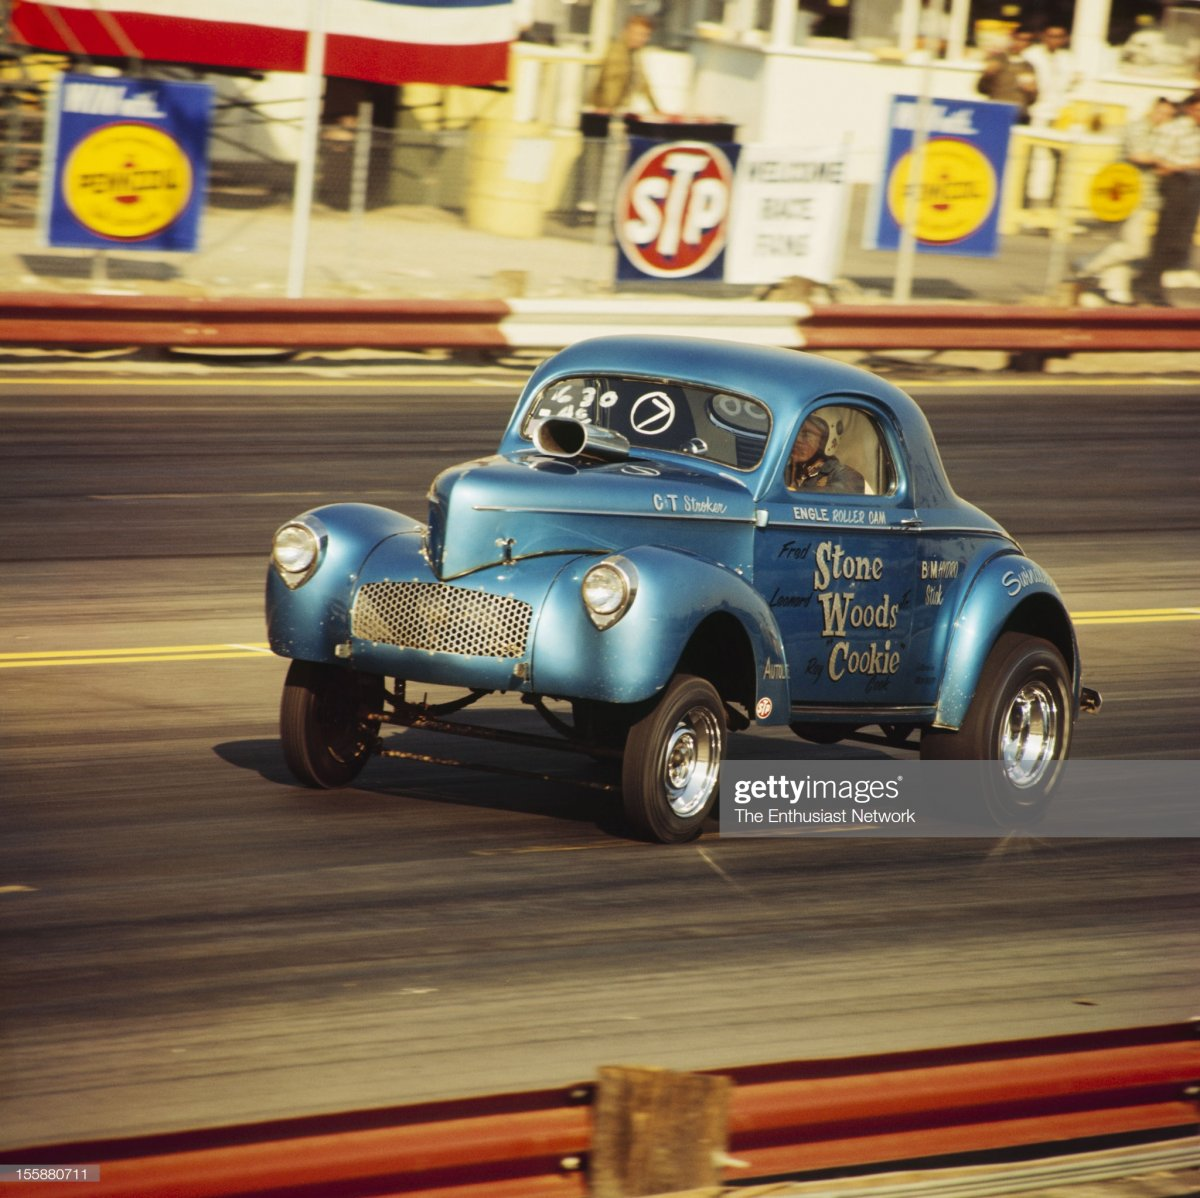 1 AHRA Winter Nationals - Irwindale Dragway SWC.jpg